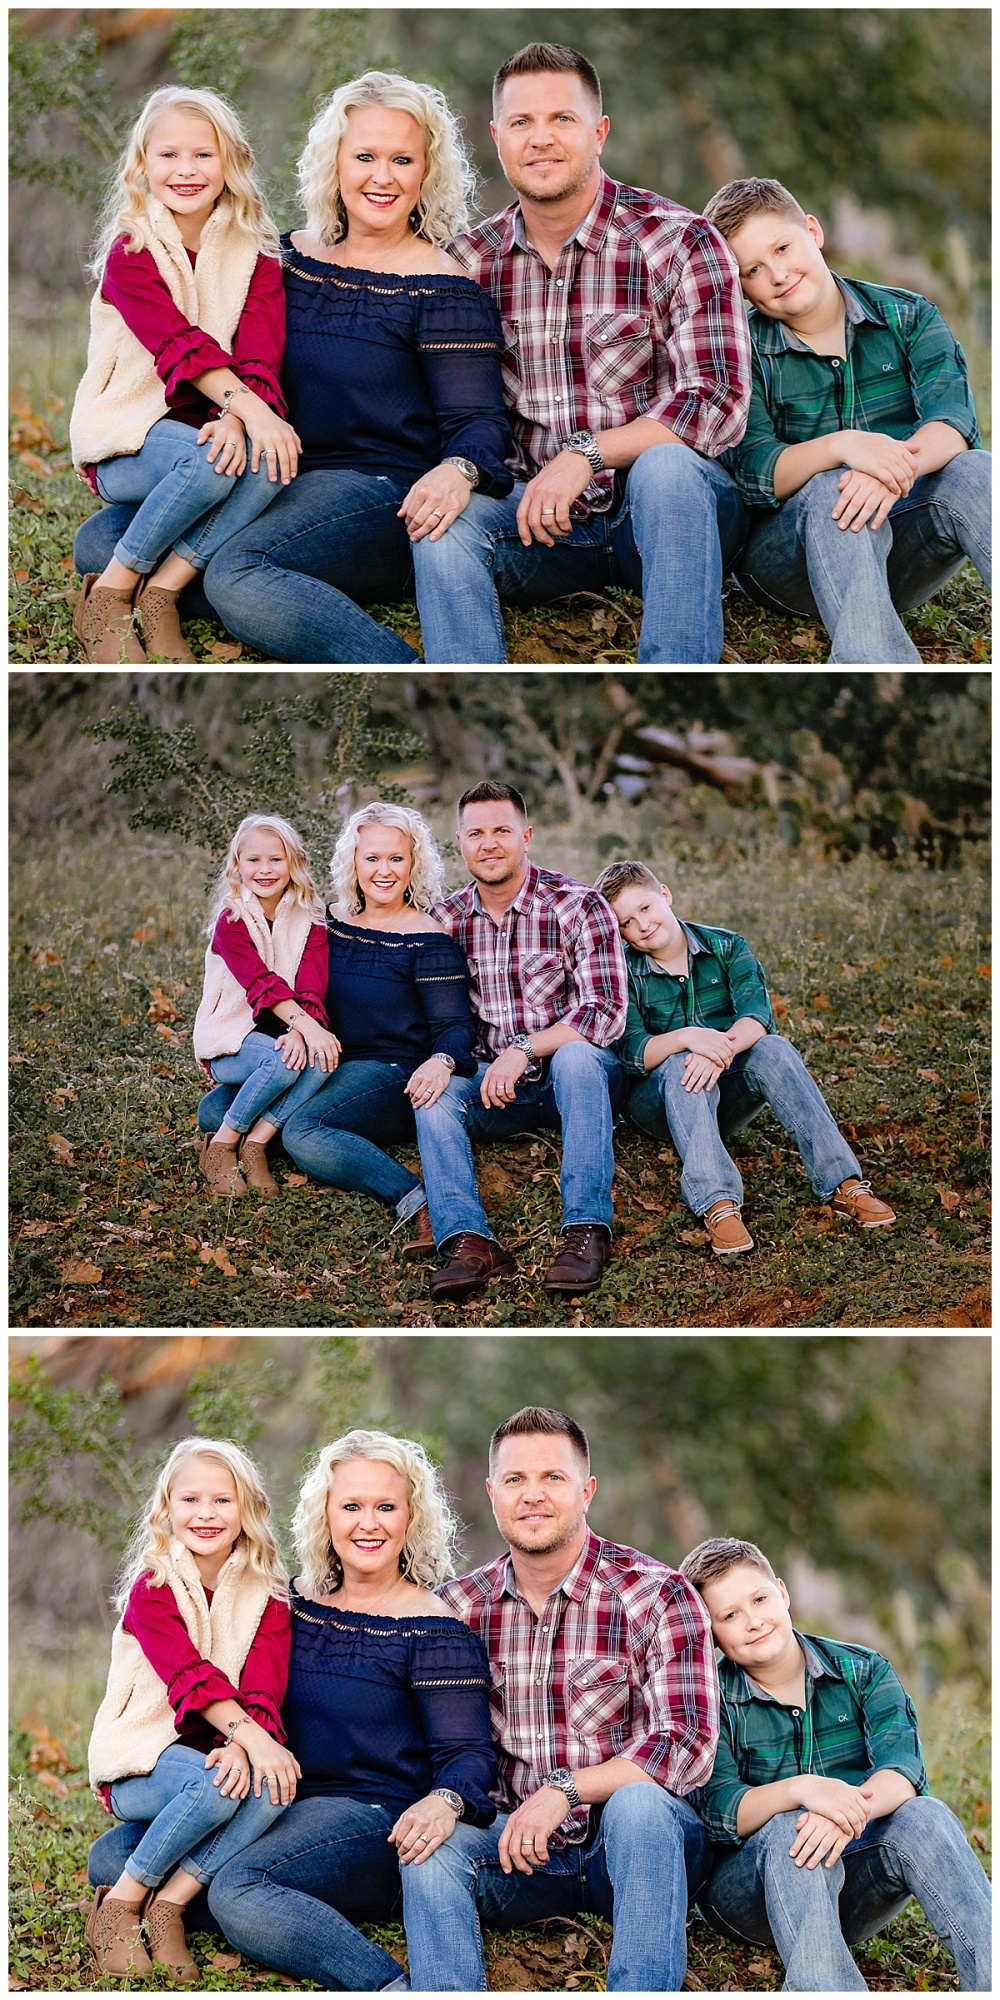 Family-Photographer-LaVernia-Texas-Fall-Sunset-Carly-Barton-Photography_0001.jpg